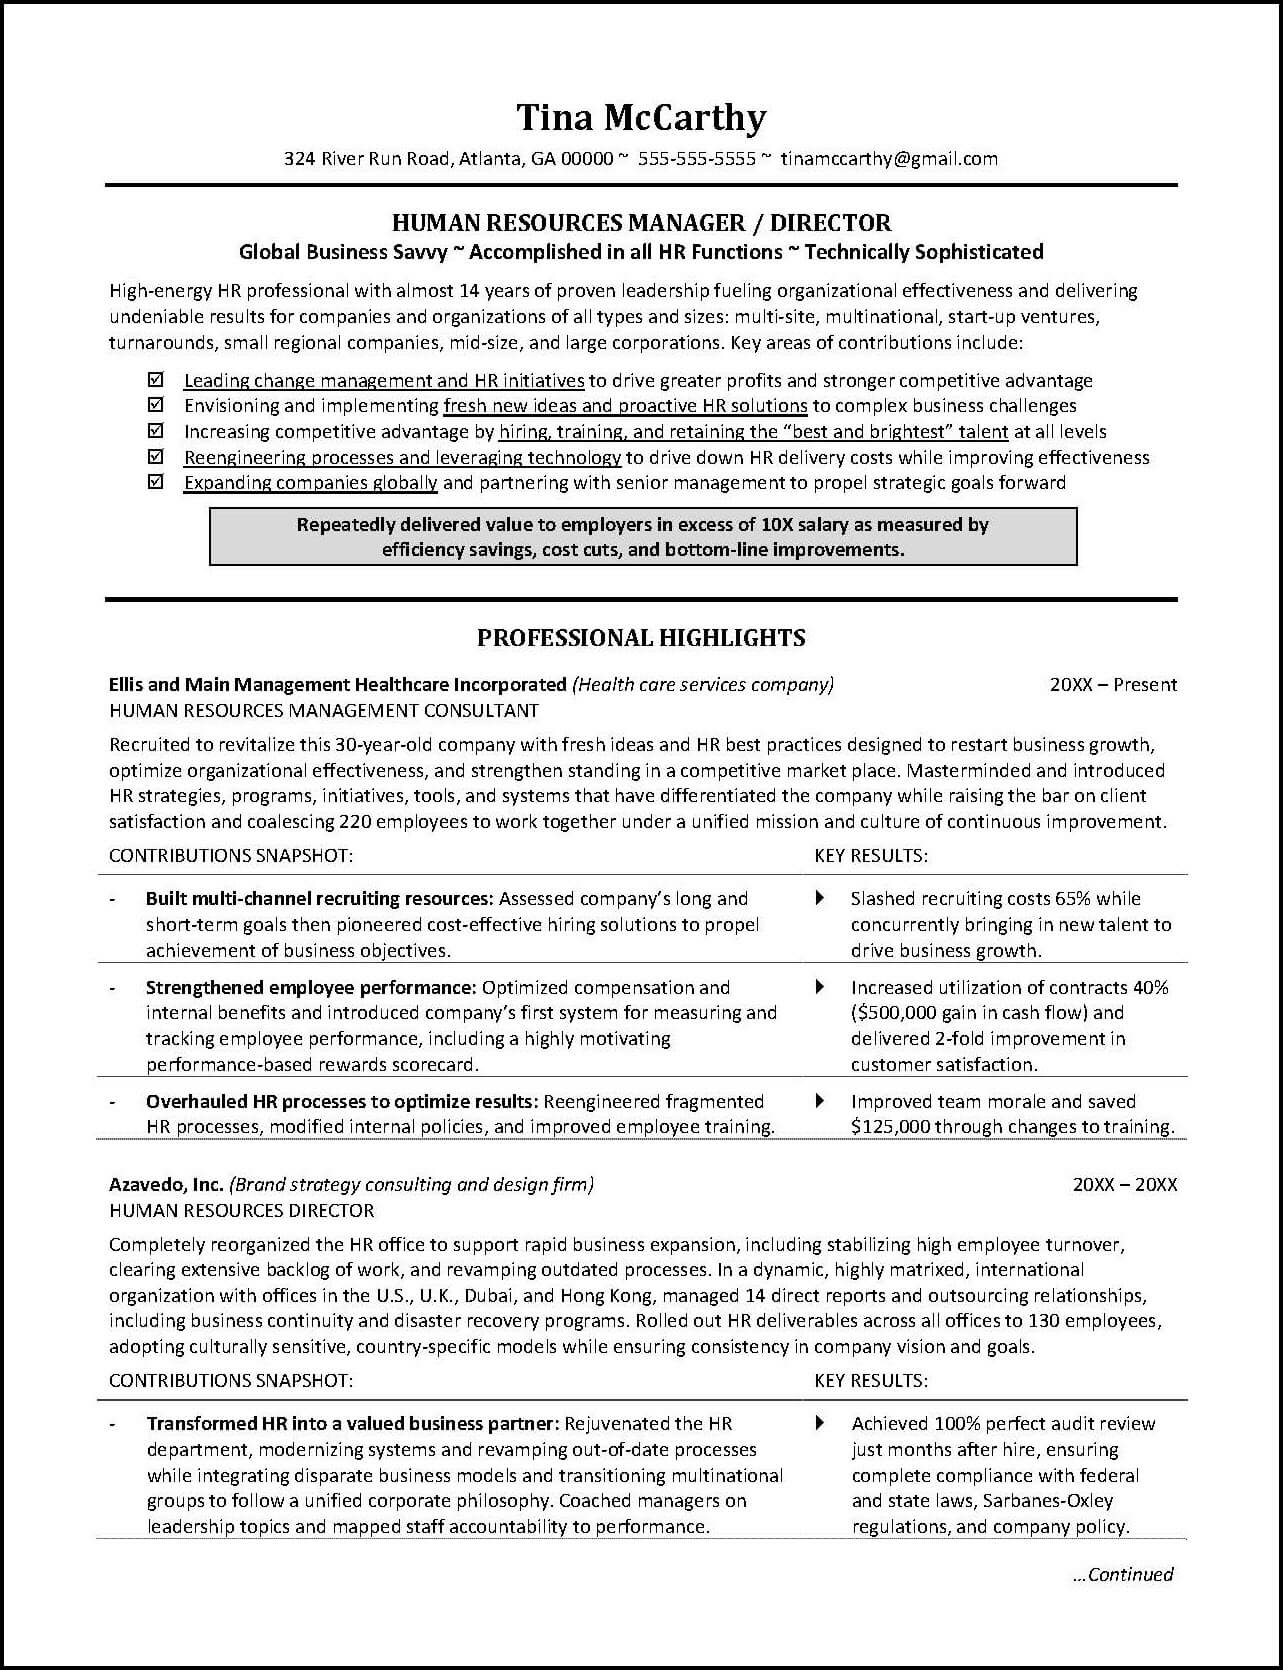 human resources resume page 1